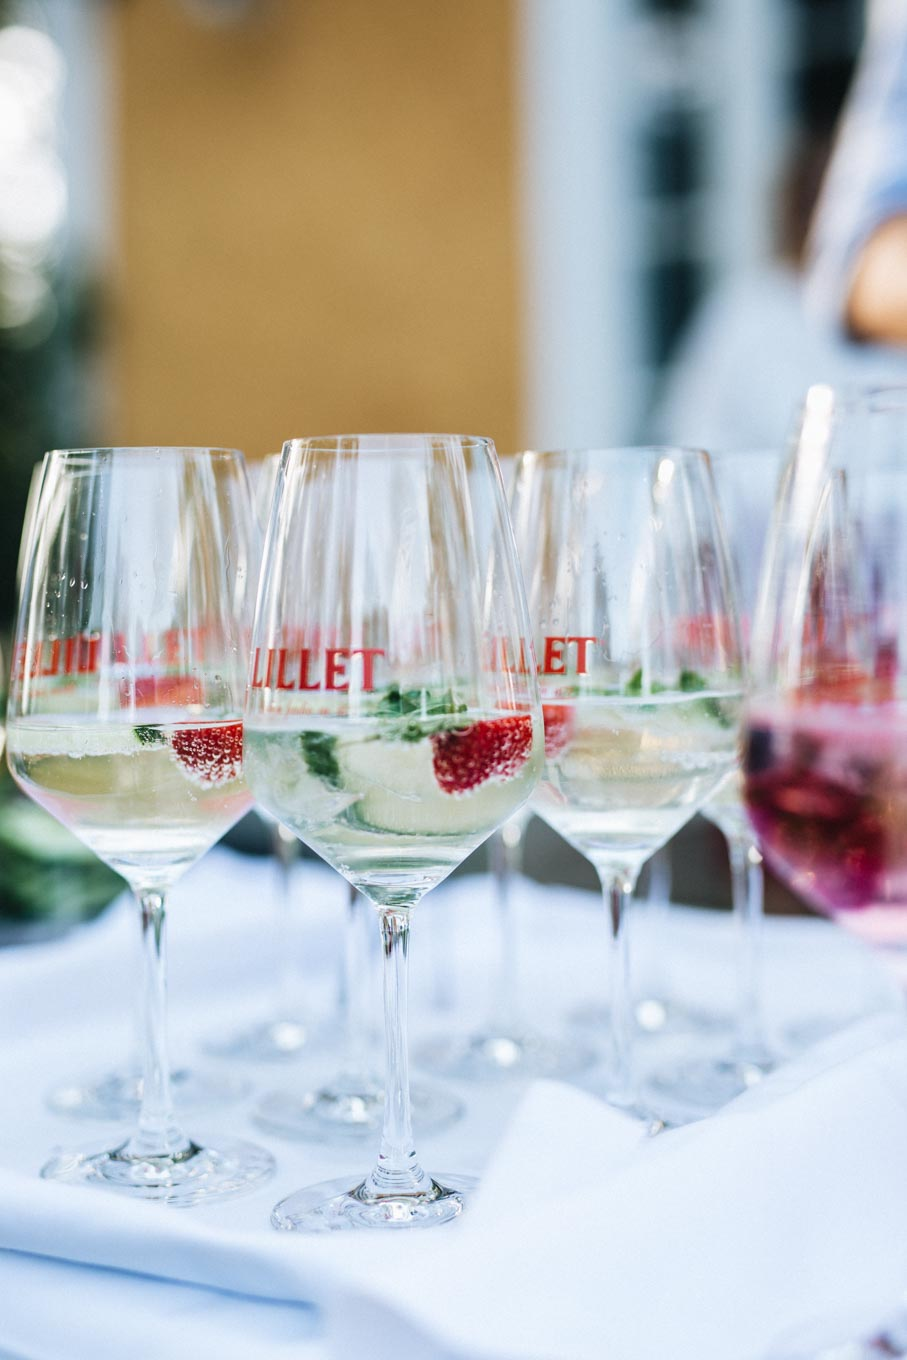 Lifestyle: Lillet Picnic Salzburg | You rock my life